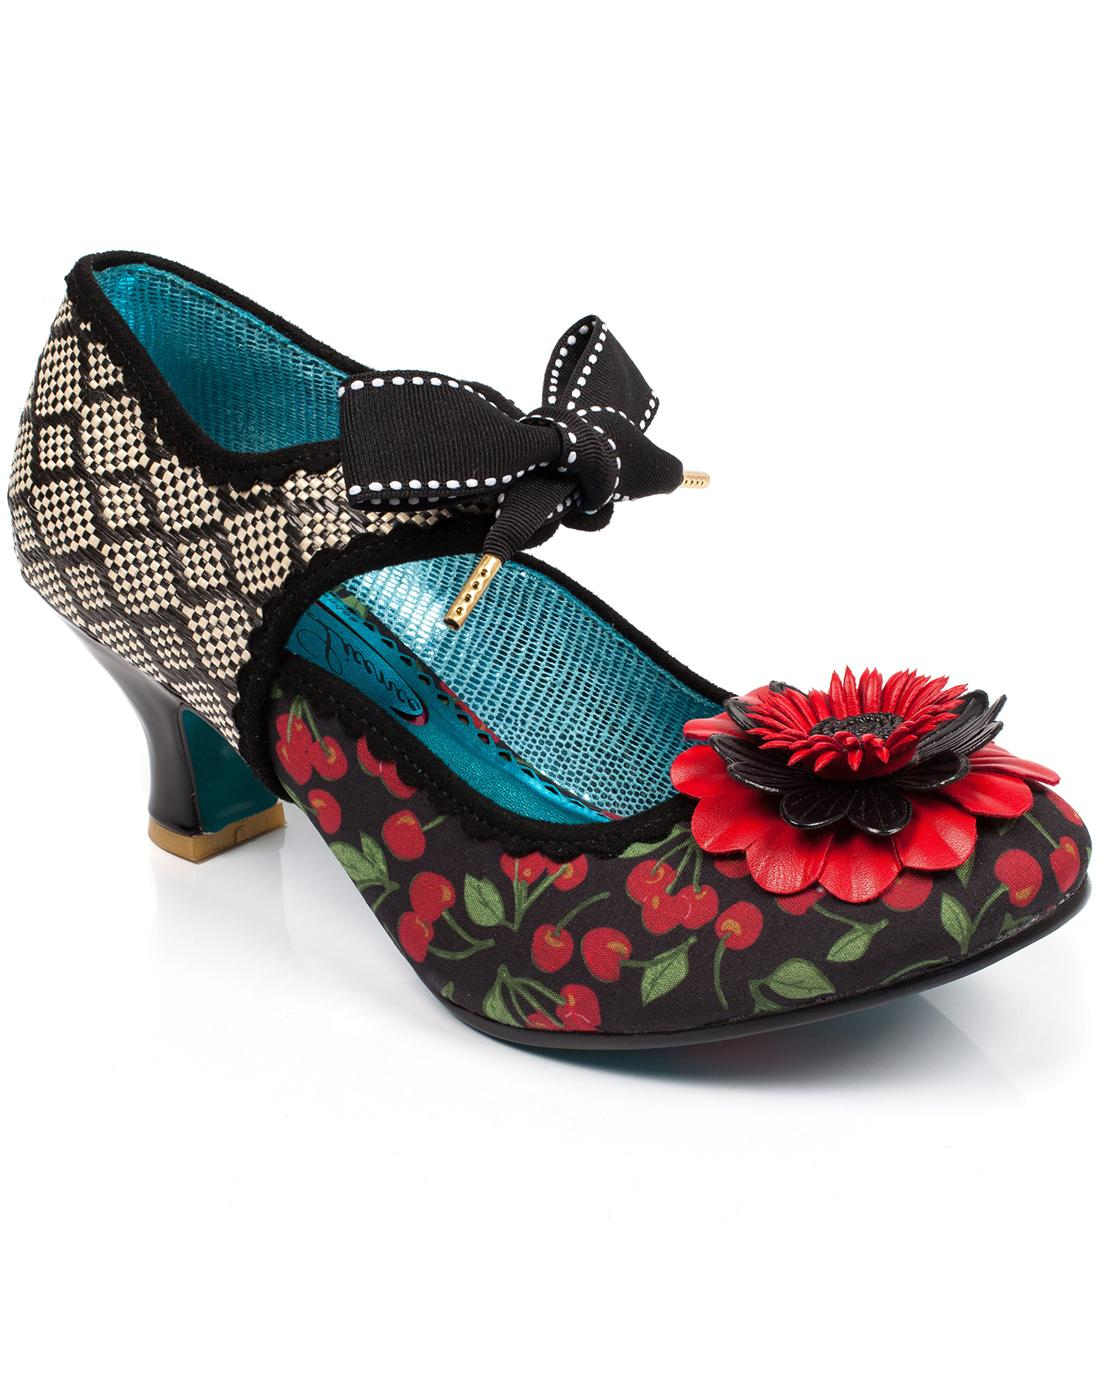 Golden Daisy POETIC LICENCE Retro Floral Heels B